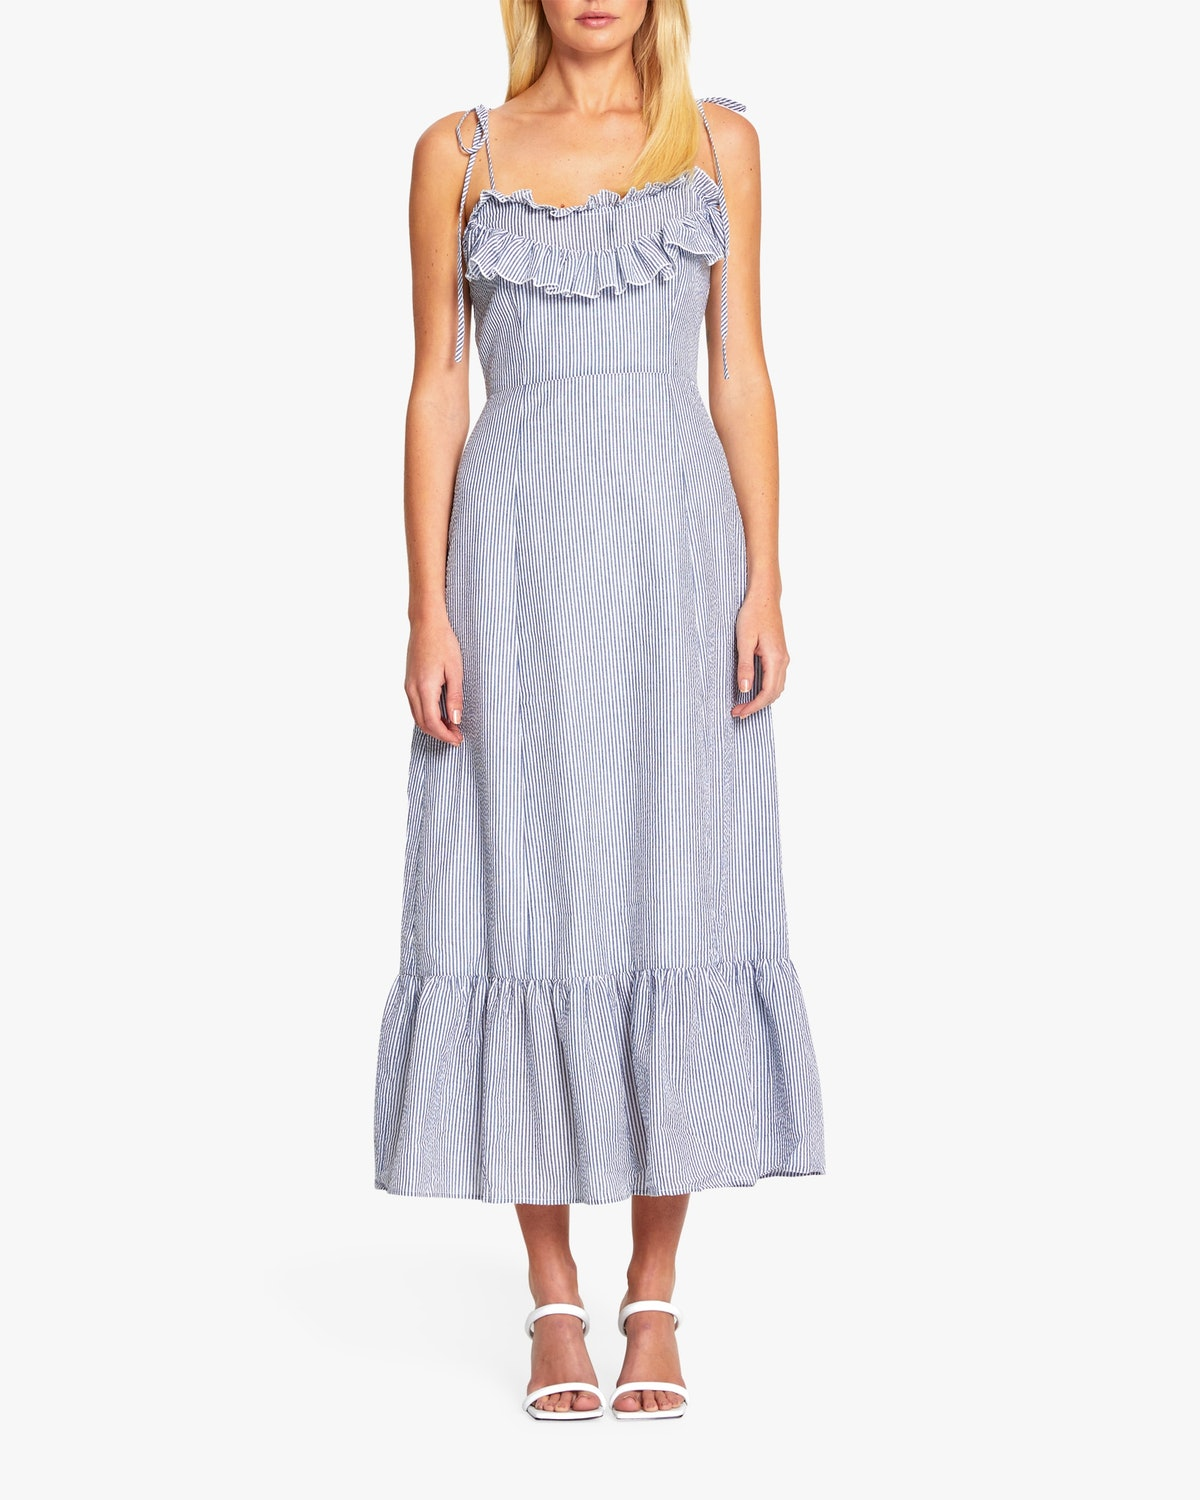 Alice McCall's French-inspired midi dress with ruffle detailing.